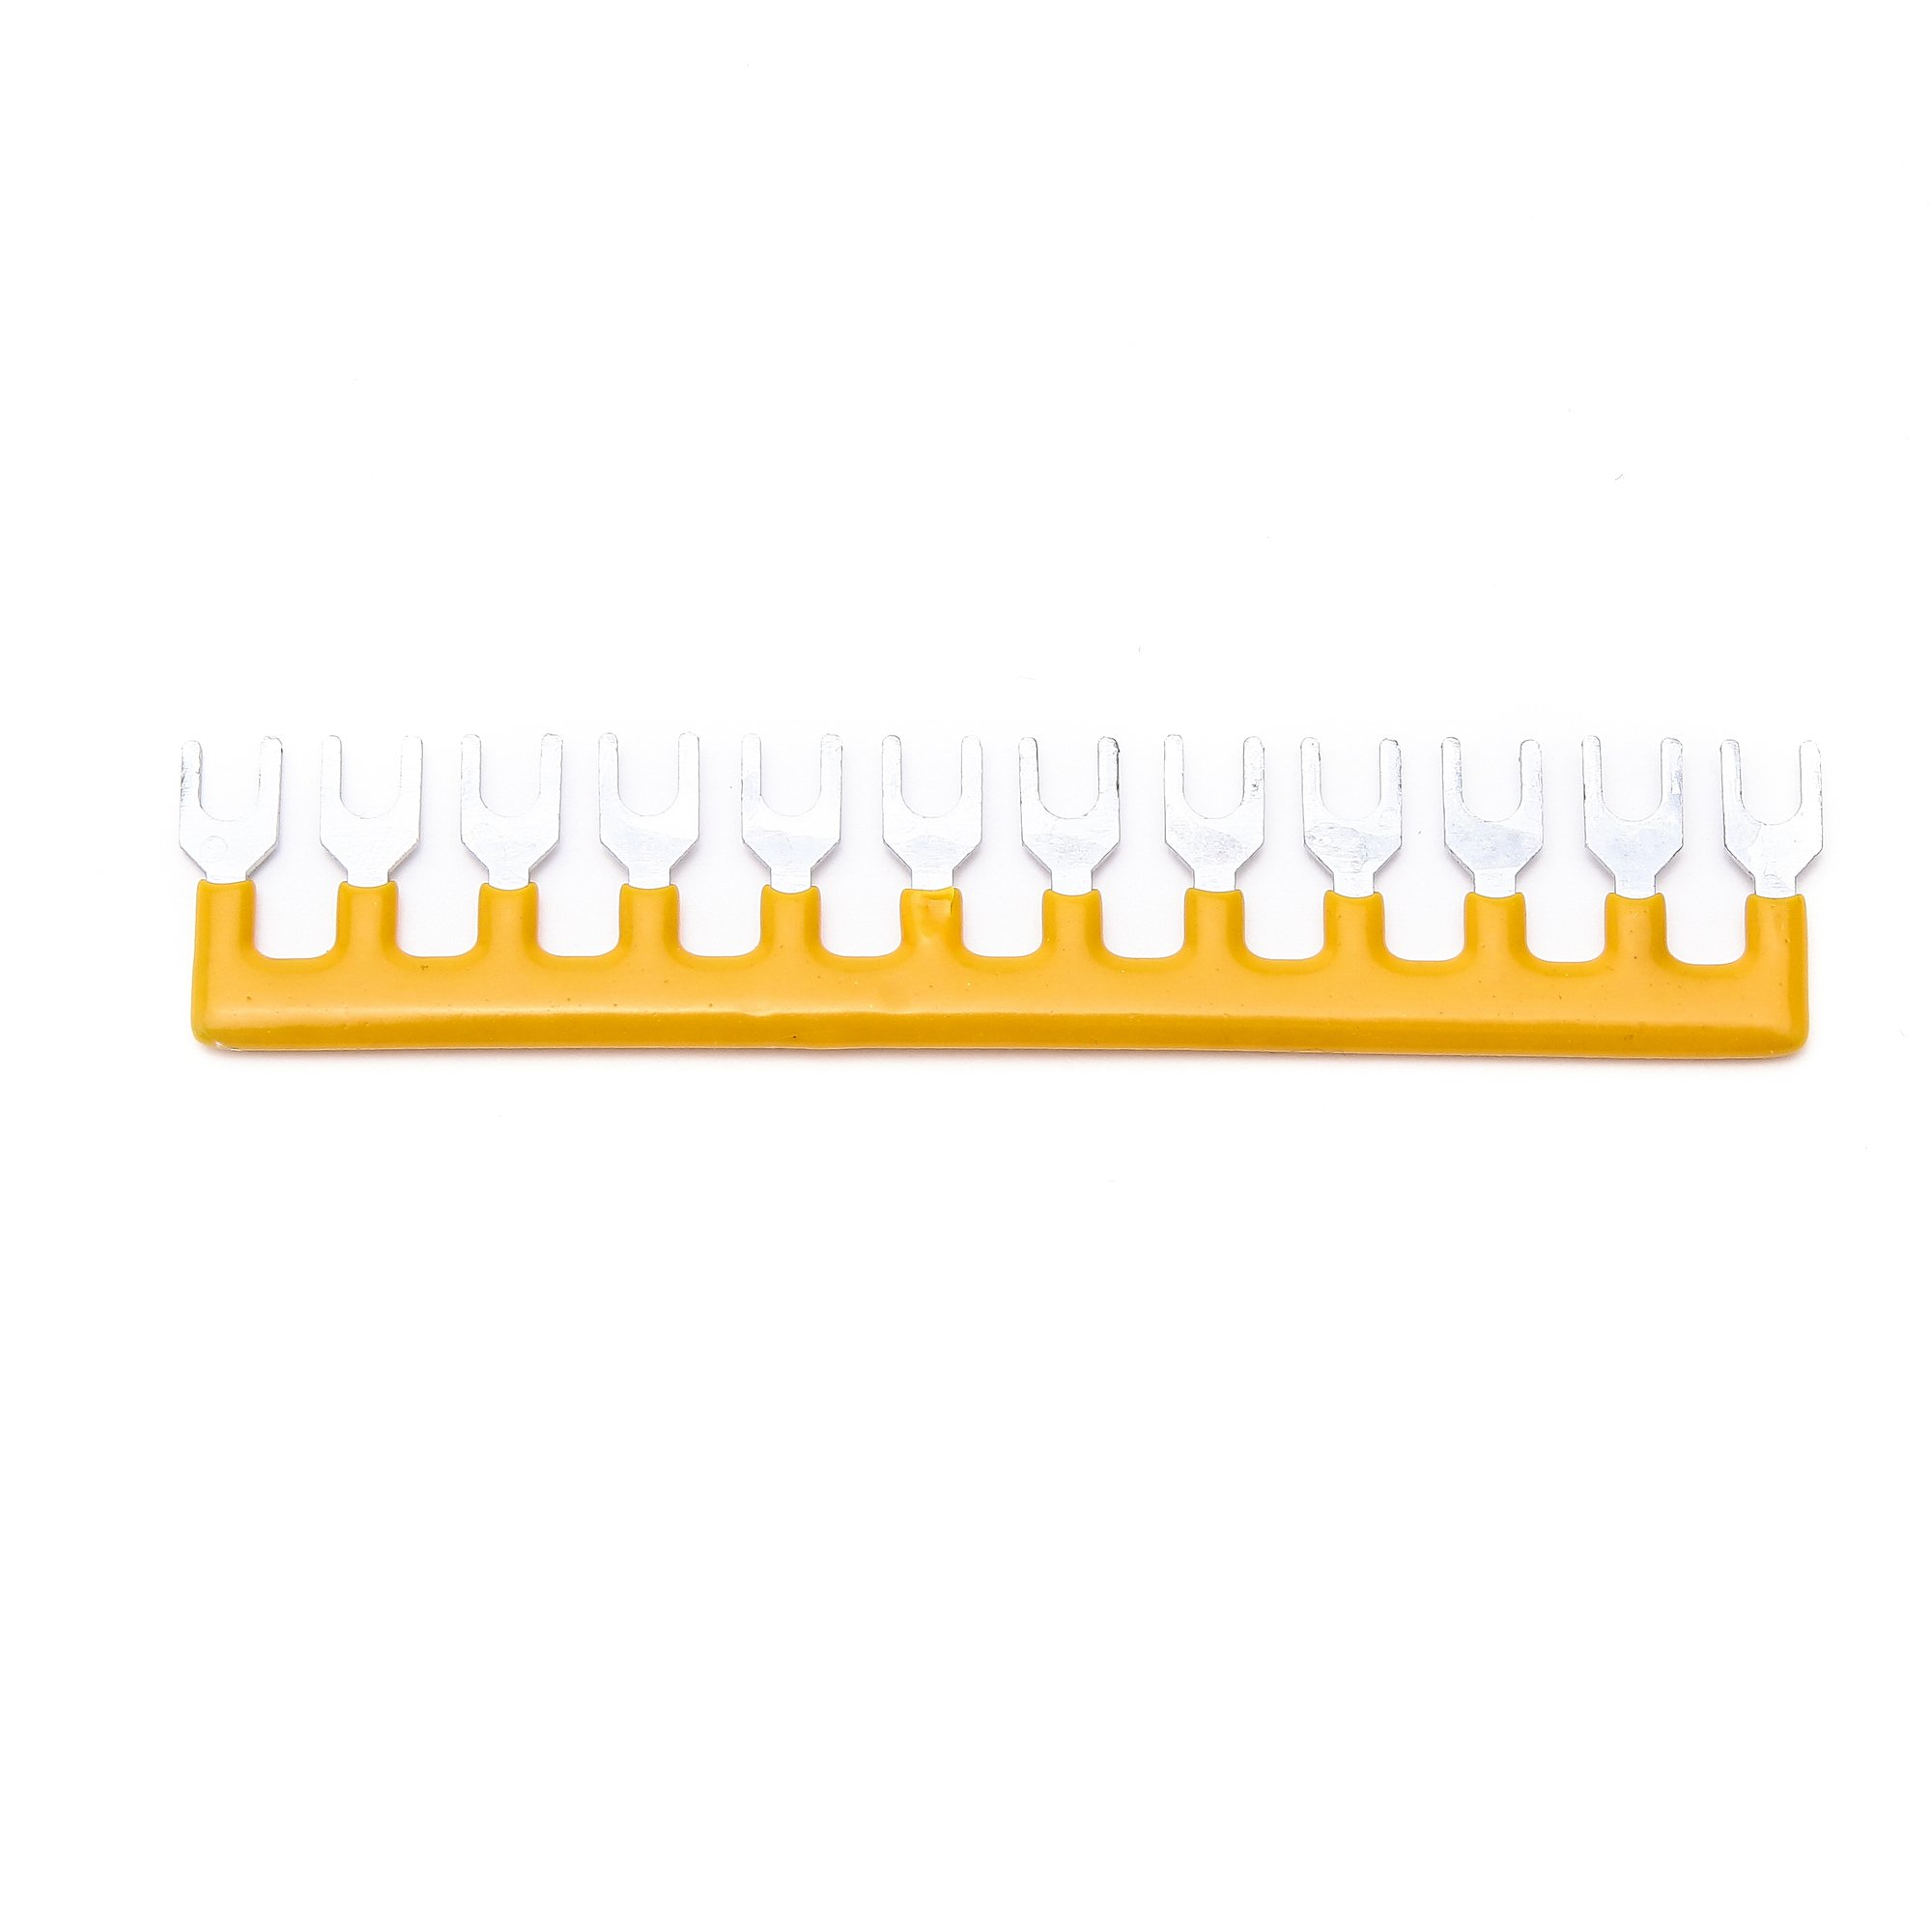 Suyep 12 Positions 25A Wire Connector Pre Insulated Fork Type Barrier Spades Terminal Strip Jumper Block TB2512 (10, Yellow)